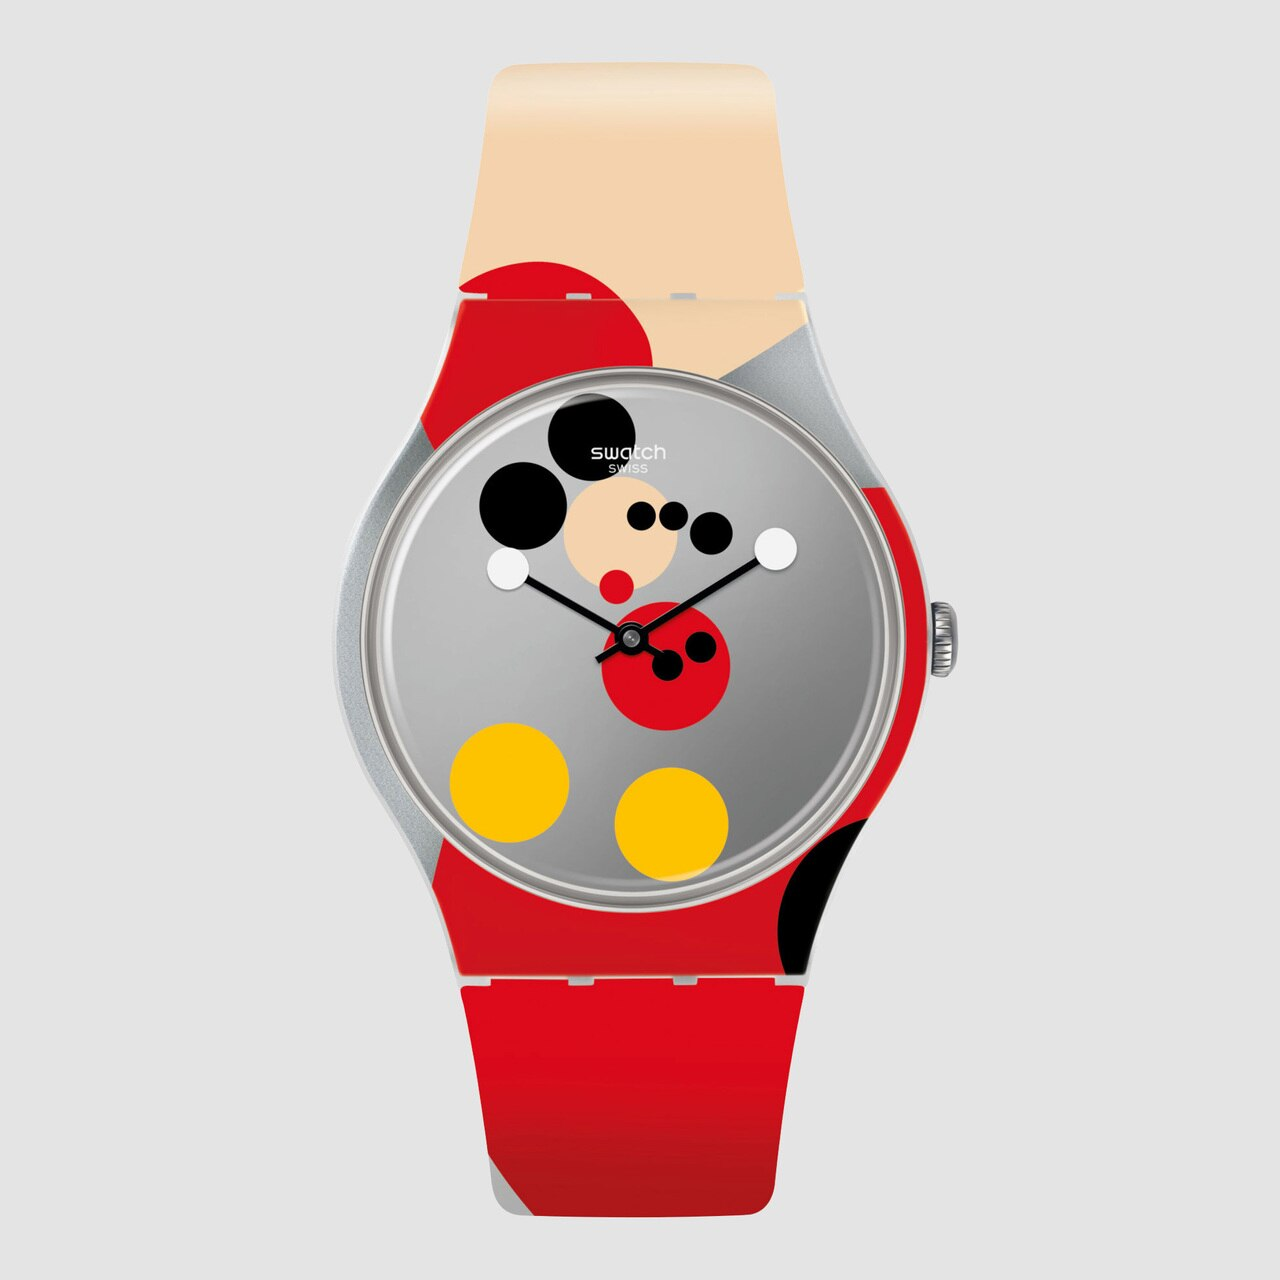 Swatch x Damien Hirst - Mirror Spot Mickey Watch Limited Edition